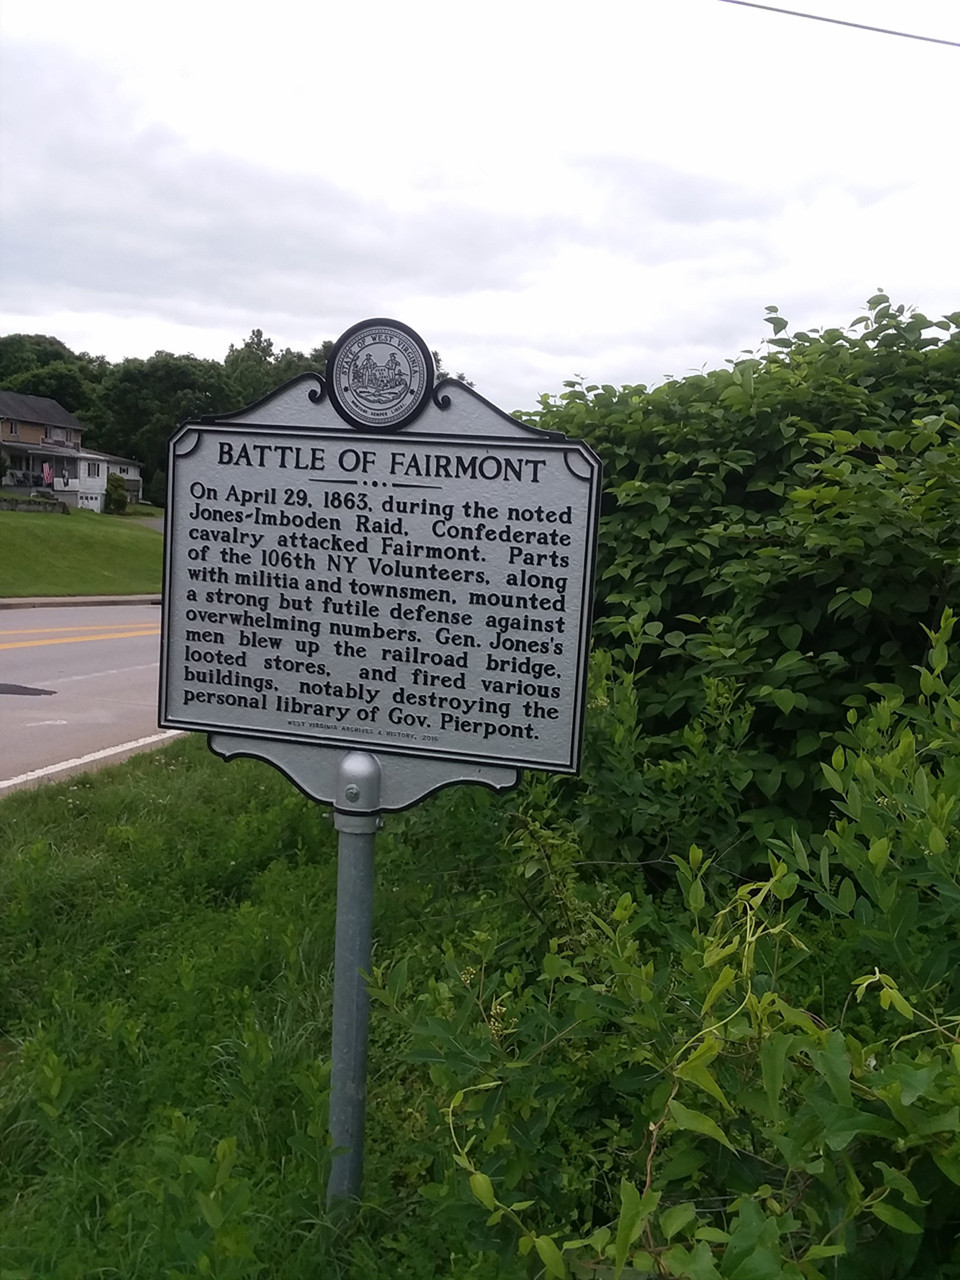 The Battle of Fairmont Historical Marker